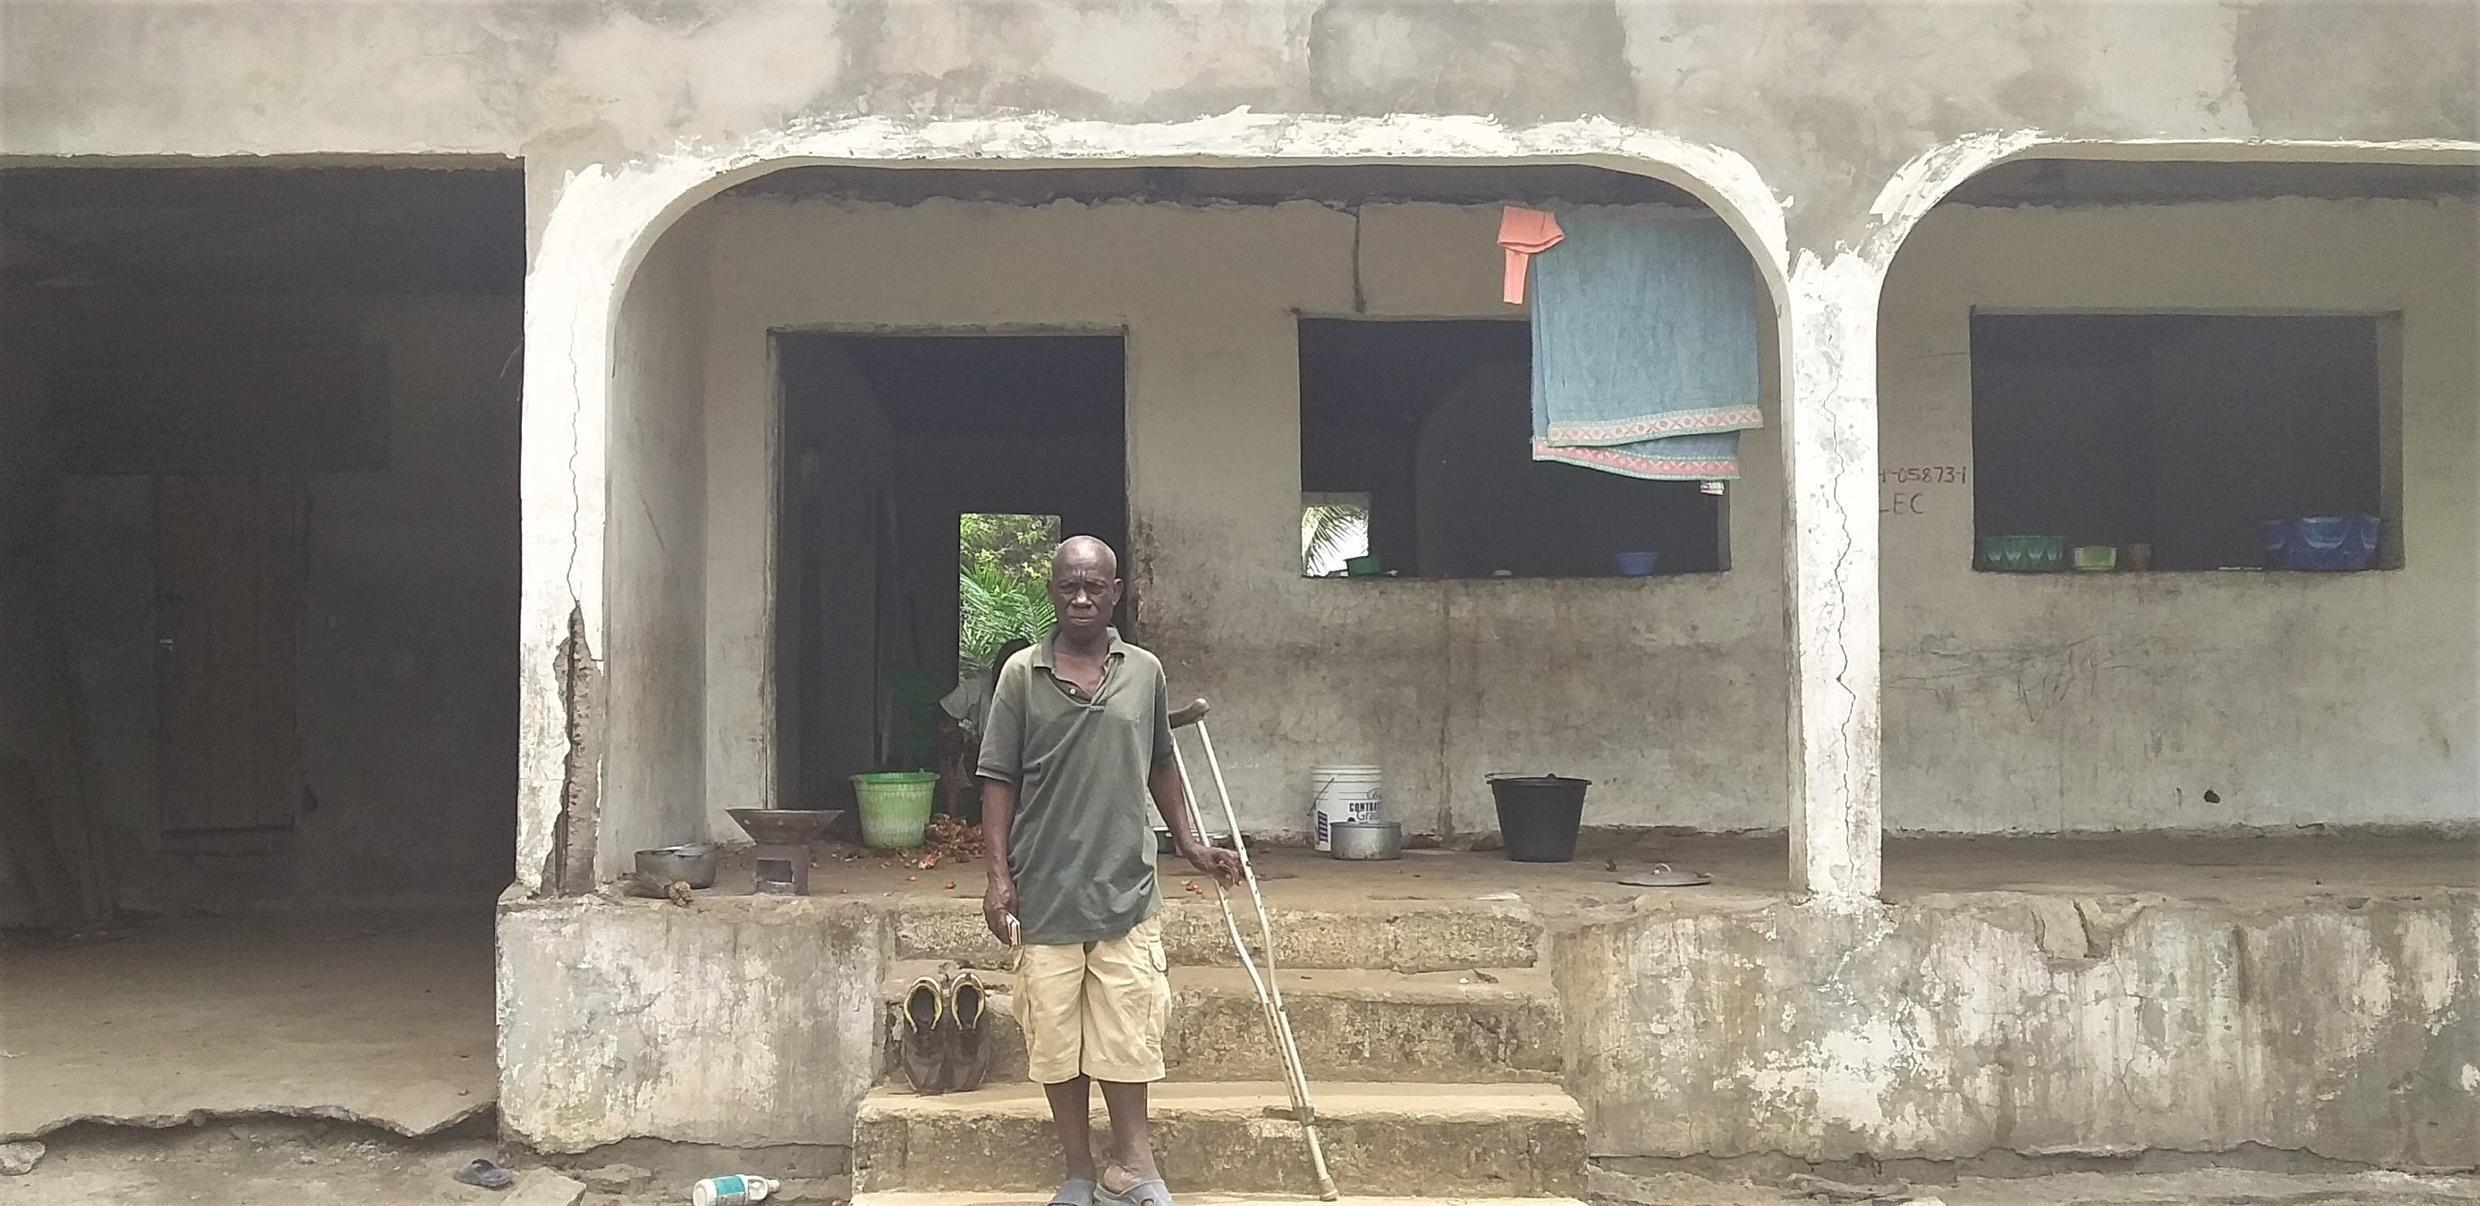 Rufus Kartee, age 52 standing infront an unfinished building within the Soul clinic comunity in Paynesville where he lives